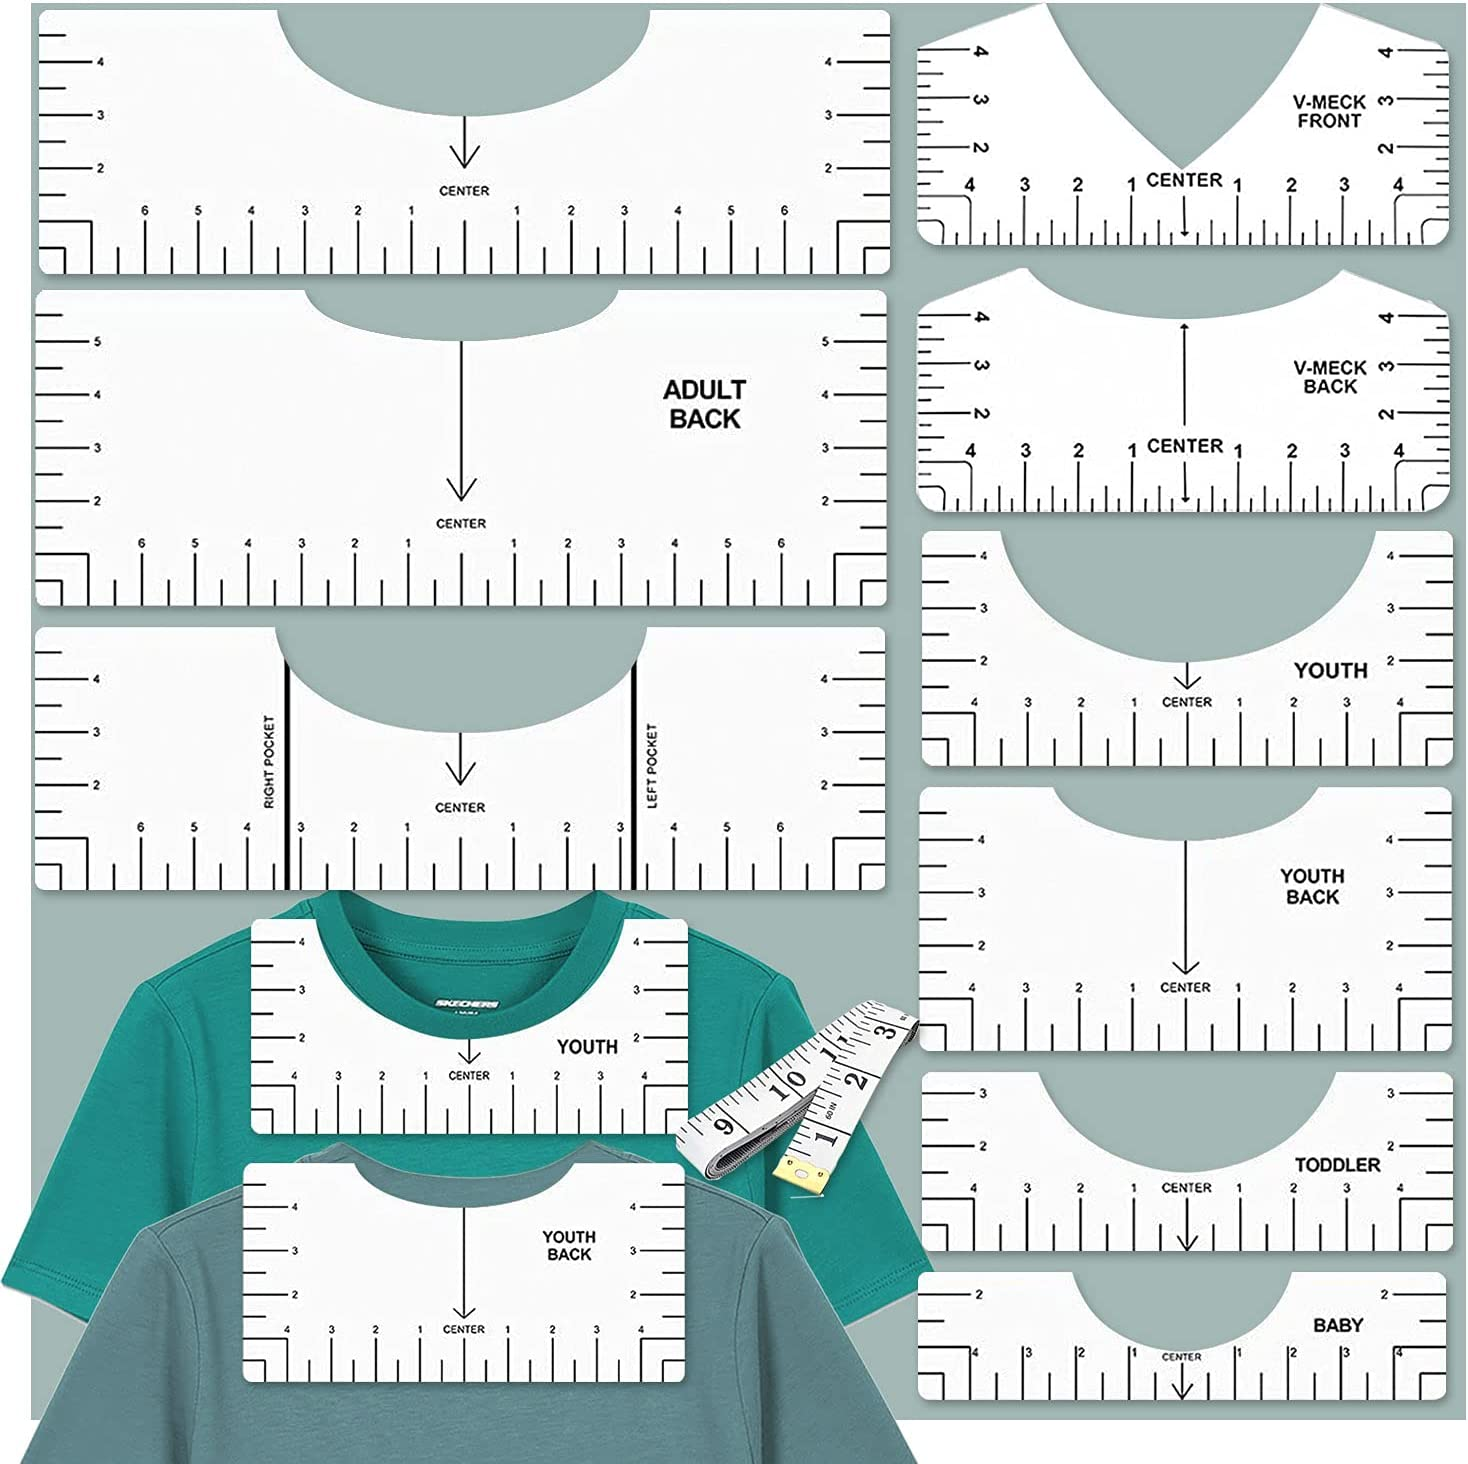 10PCS Tshirt Ruler Alignment Tool Set Tshirt Ruler Guide for Vinyl Tshirt Alignment Tool T Shirt Rulers to Center Designs Transparent T Ruler for Infant Toddler Youth Adult, Front and Back Measurement